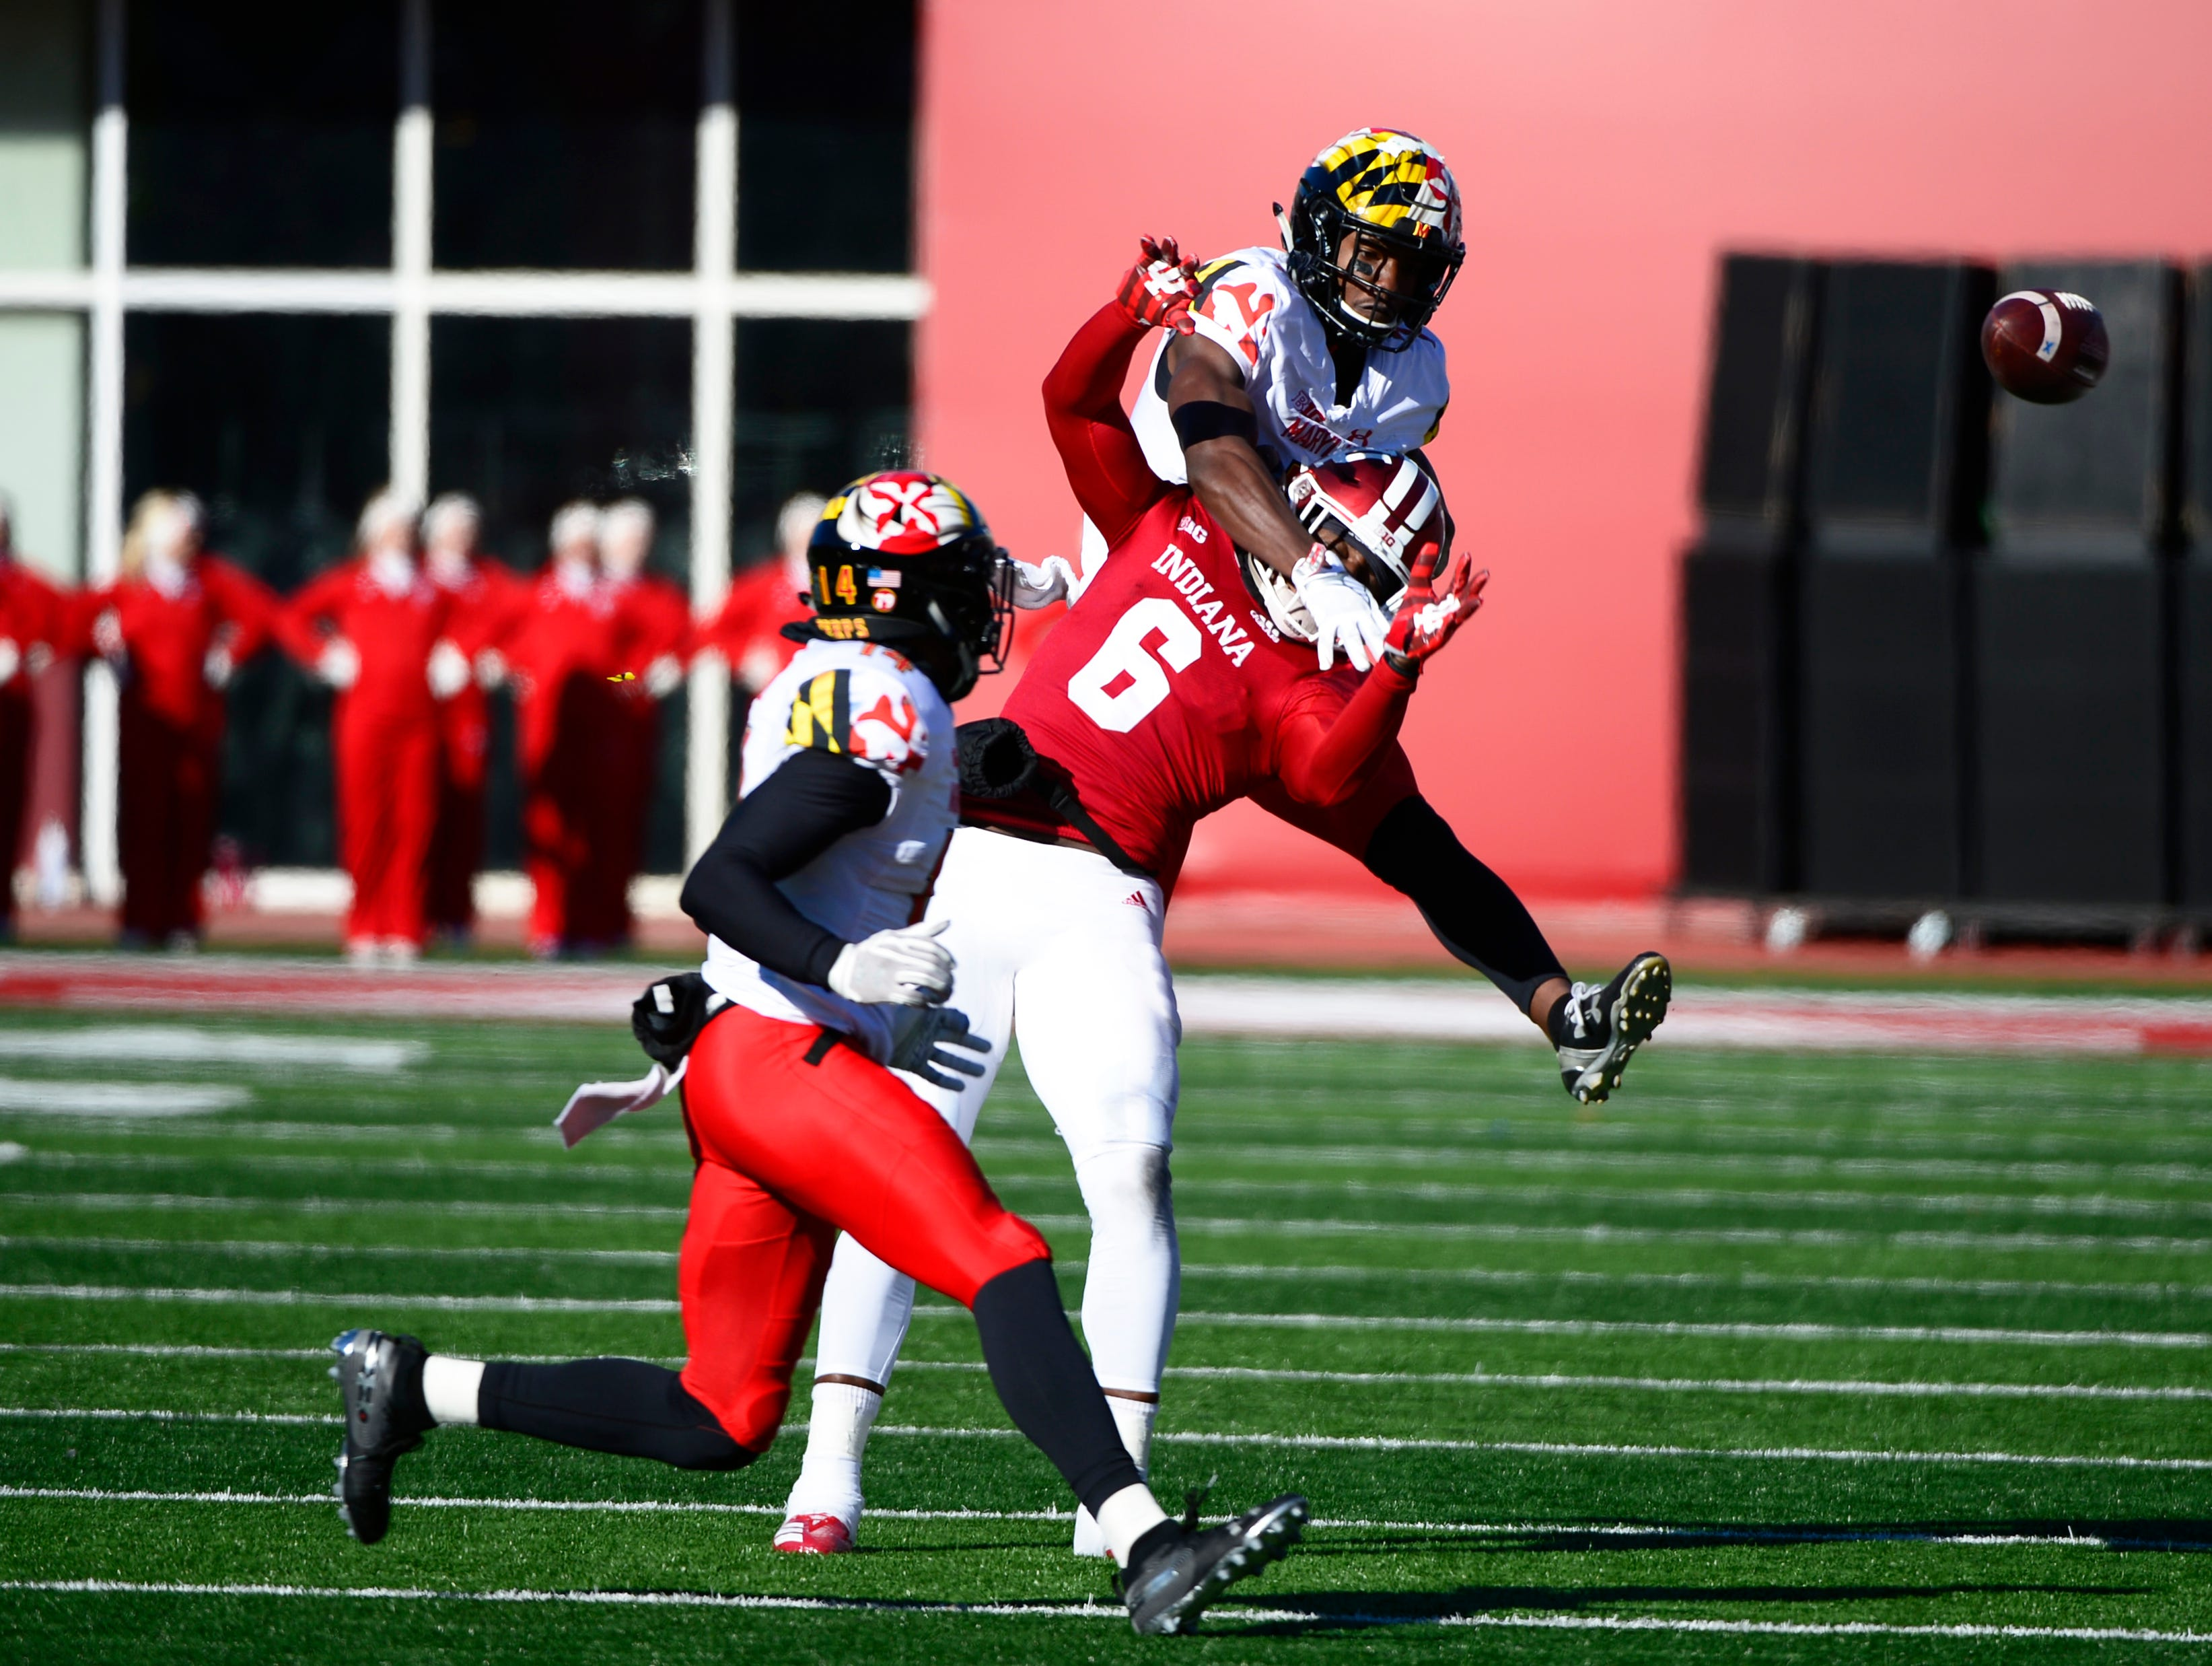 Indiana Hoosiers wide receiver Donovan Hale (6) goes up to catch a pass during the game against Maryland at Memorial Stadium in Bloomington, Ind., on Satuday, Nov. 10, 2018.